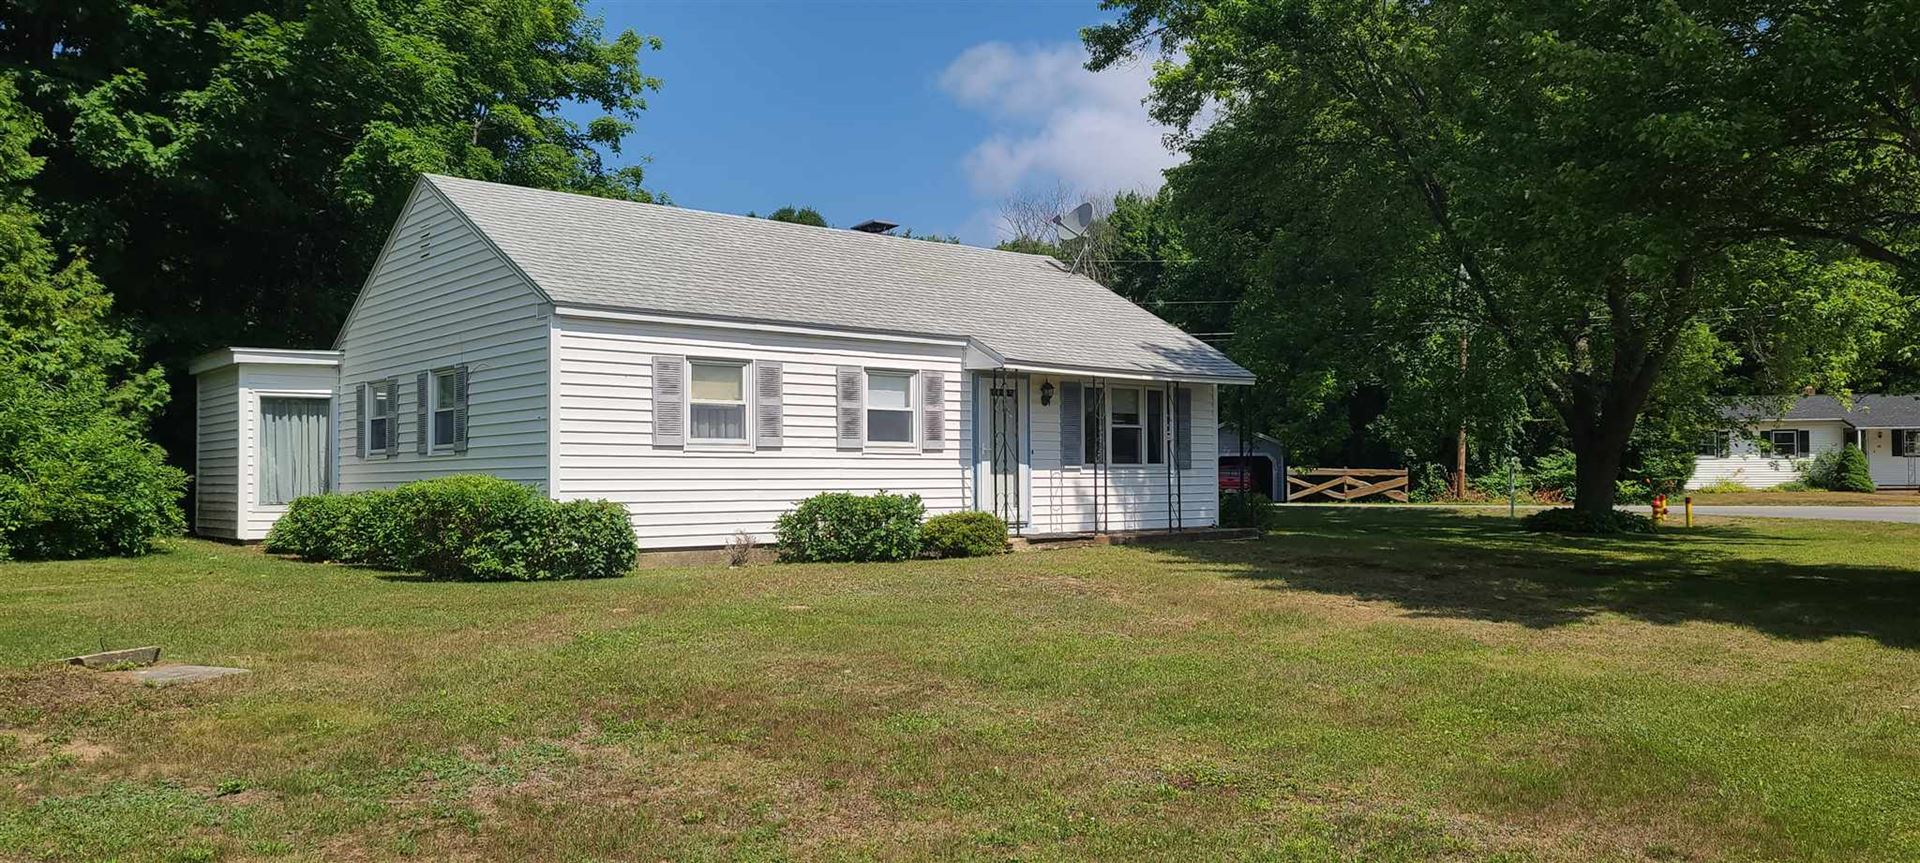 1 Constance Street, Bedford, NH 03110 - #: 4814750